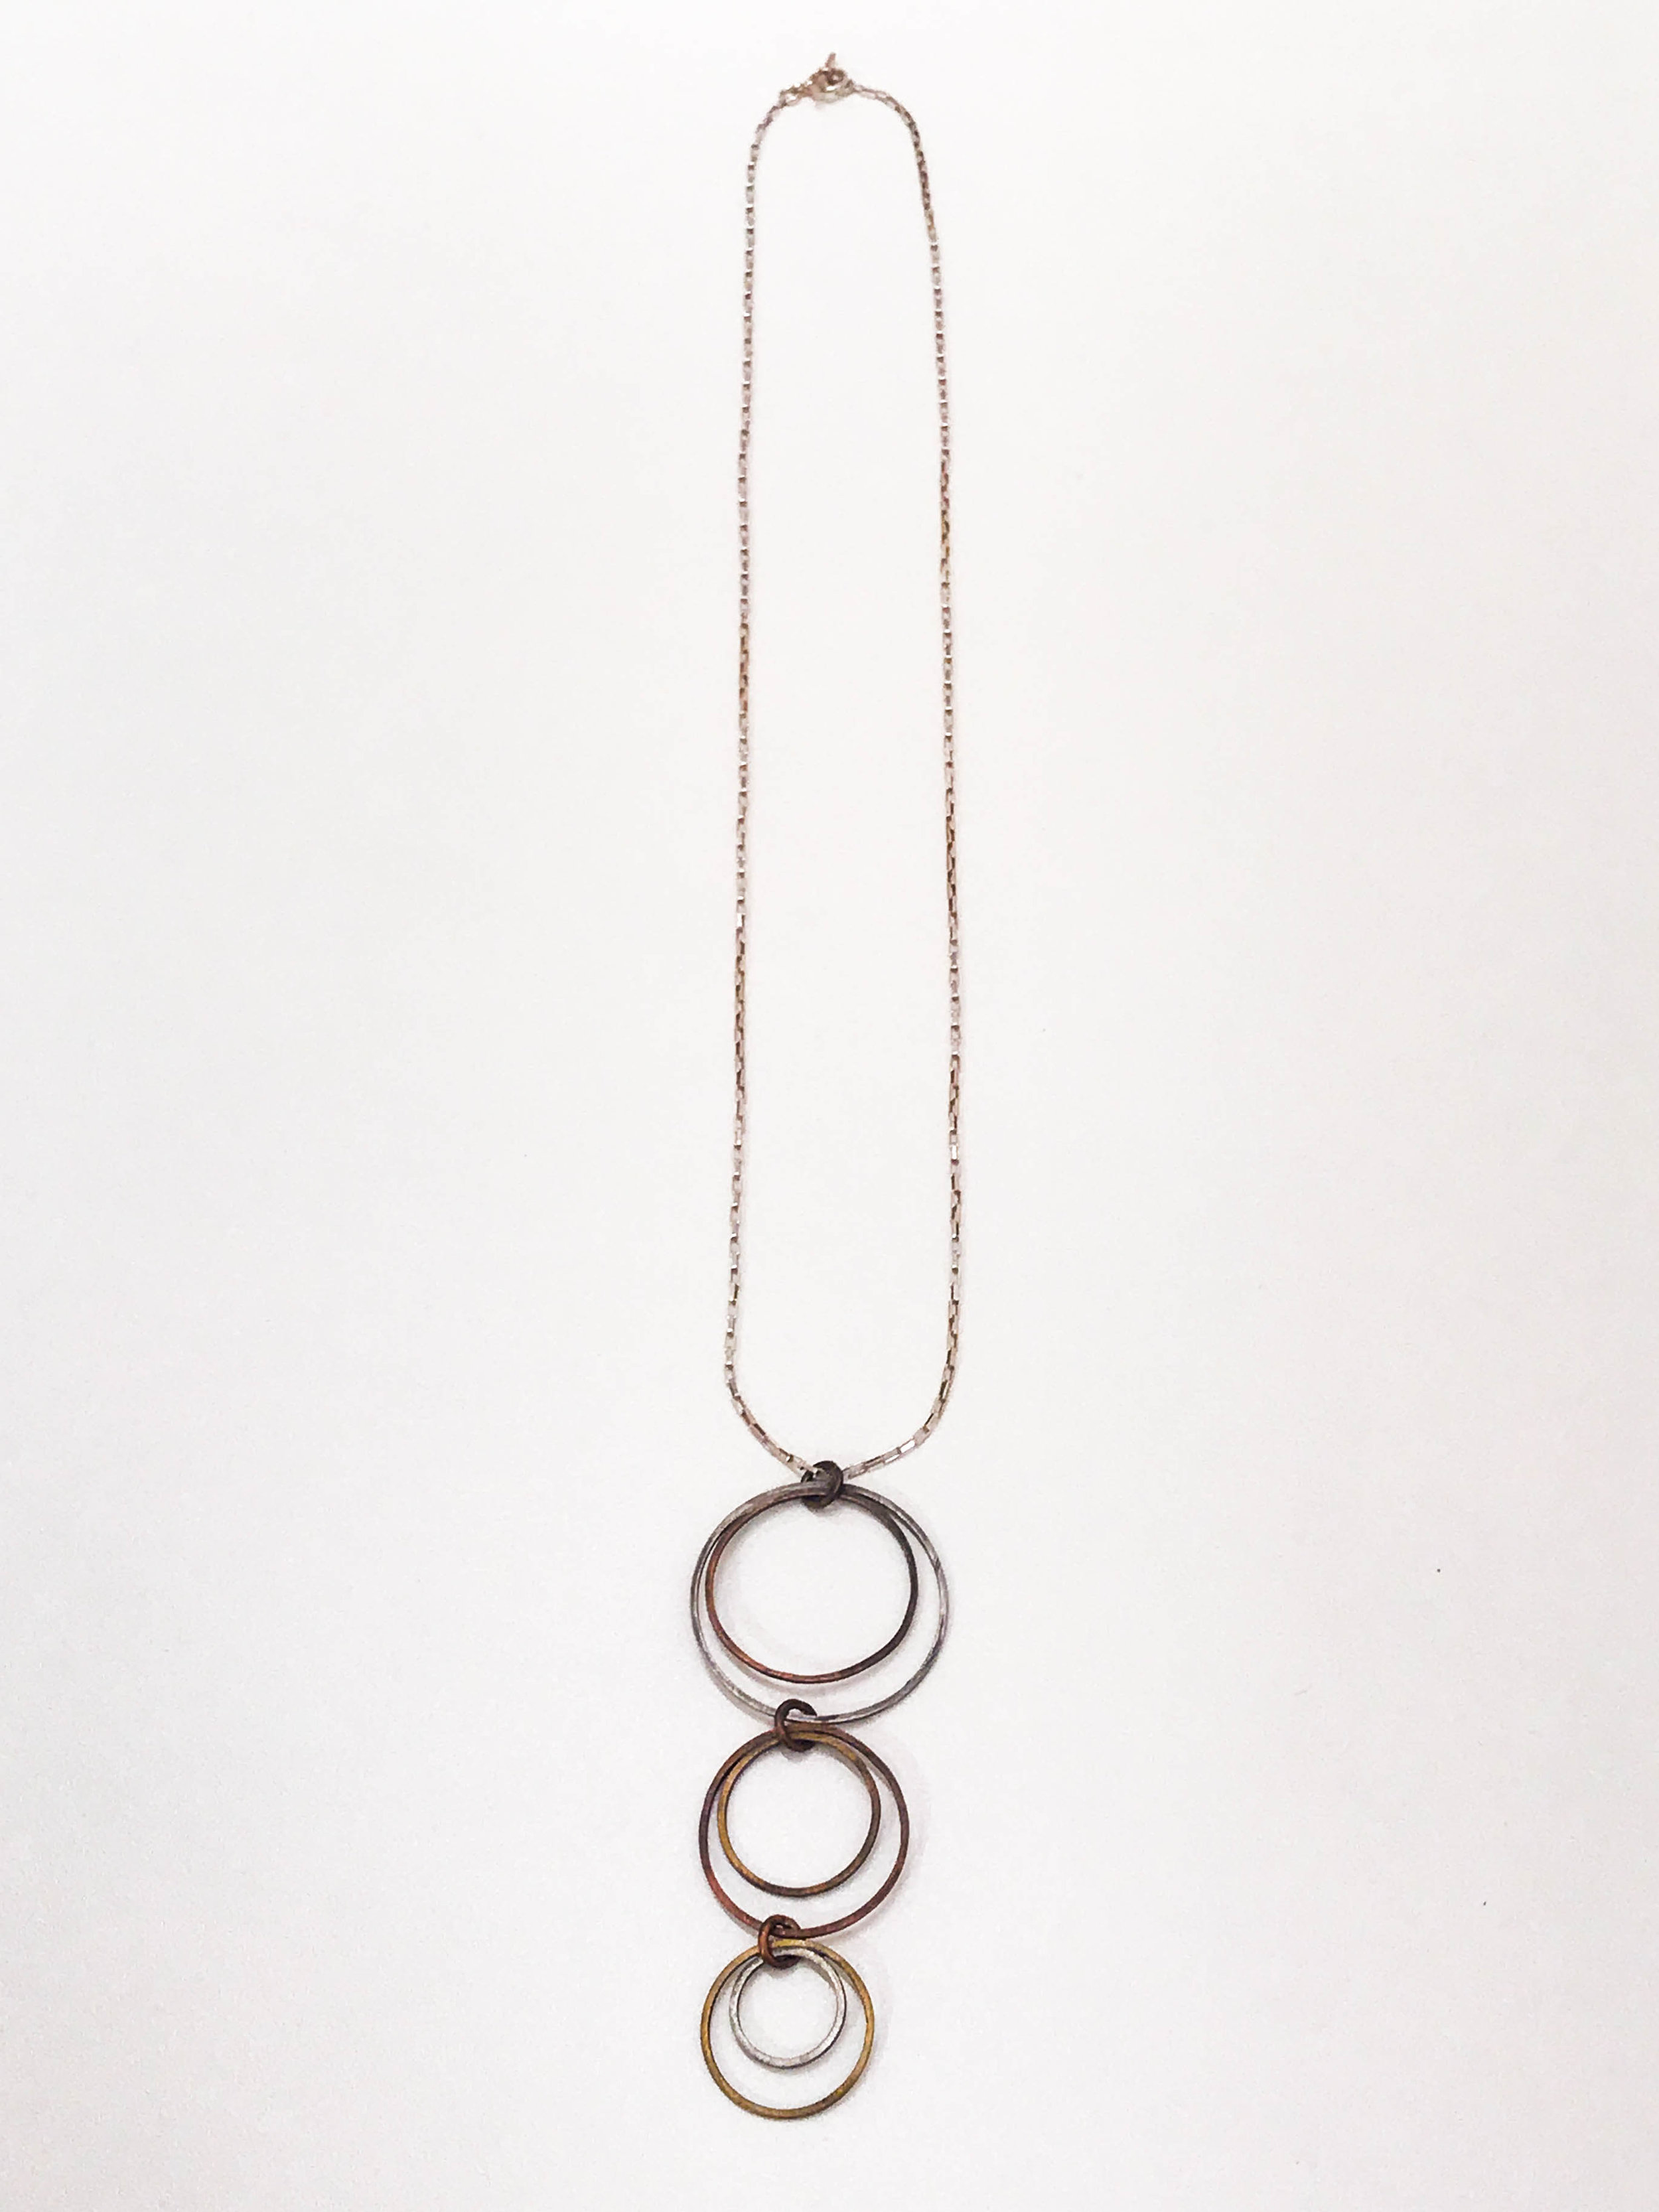 "Sterling silver chain with pendant of 6 interconnected circles in sterling silver, copper, and brass, pendant dimensions 3 1/4"" x 1 1/4"", $90"